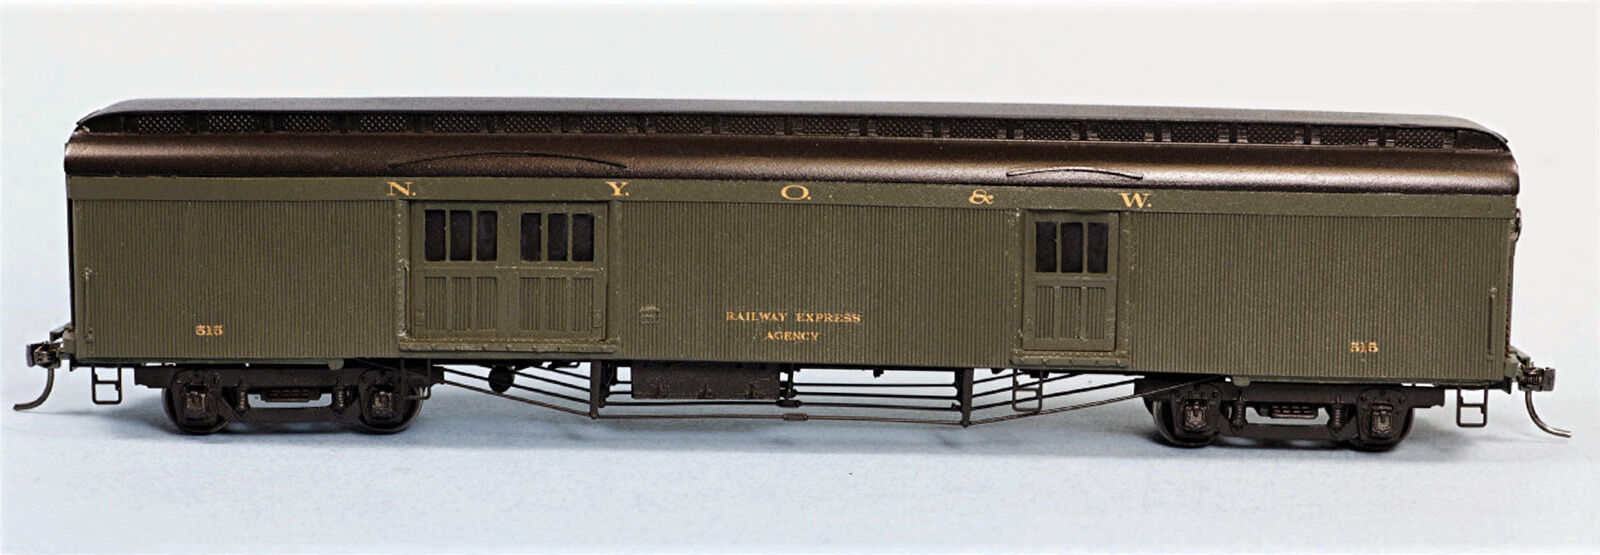 NEW YORK, ONTARIO & WESTERN BAGGAGE CAR HO Model Railroad Unptd Kit SPK36